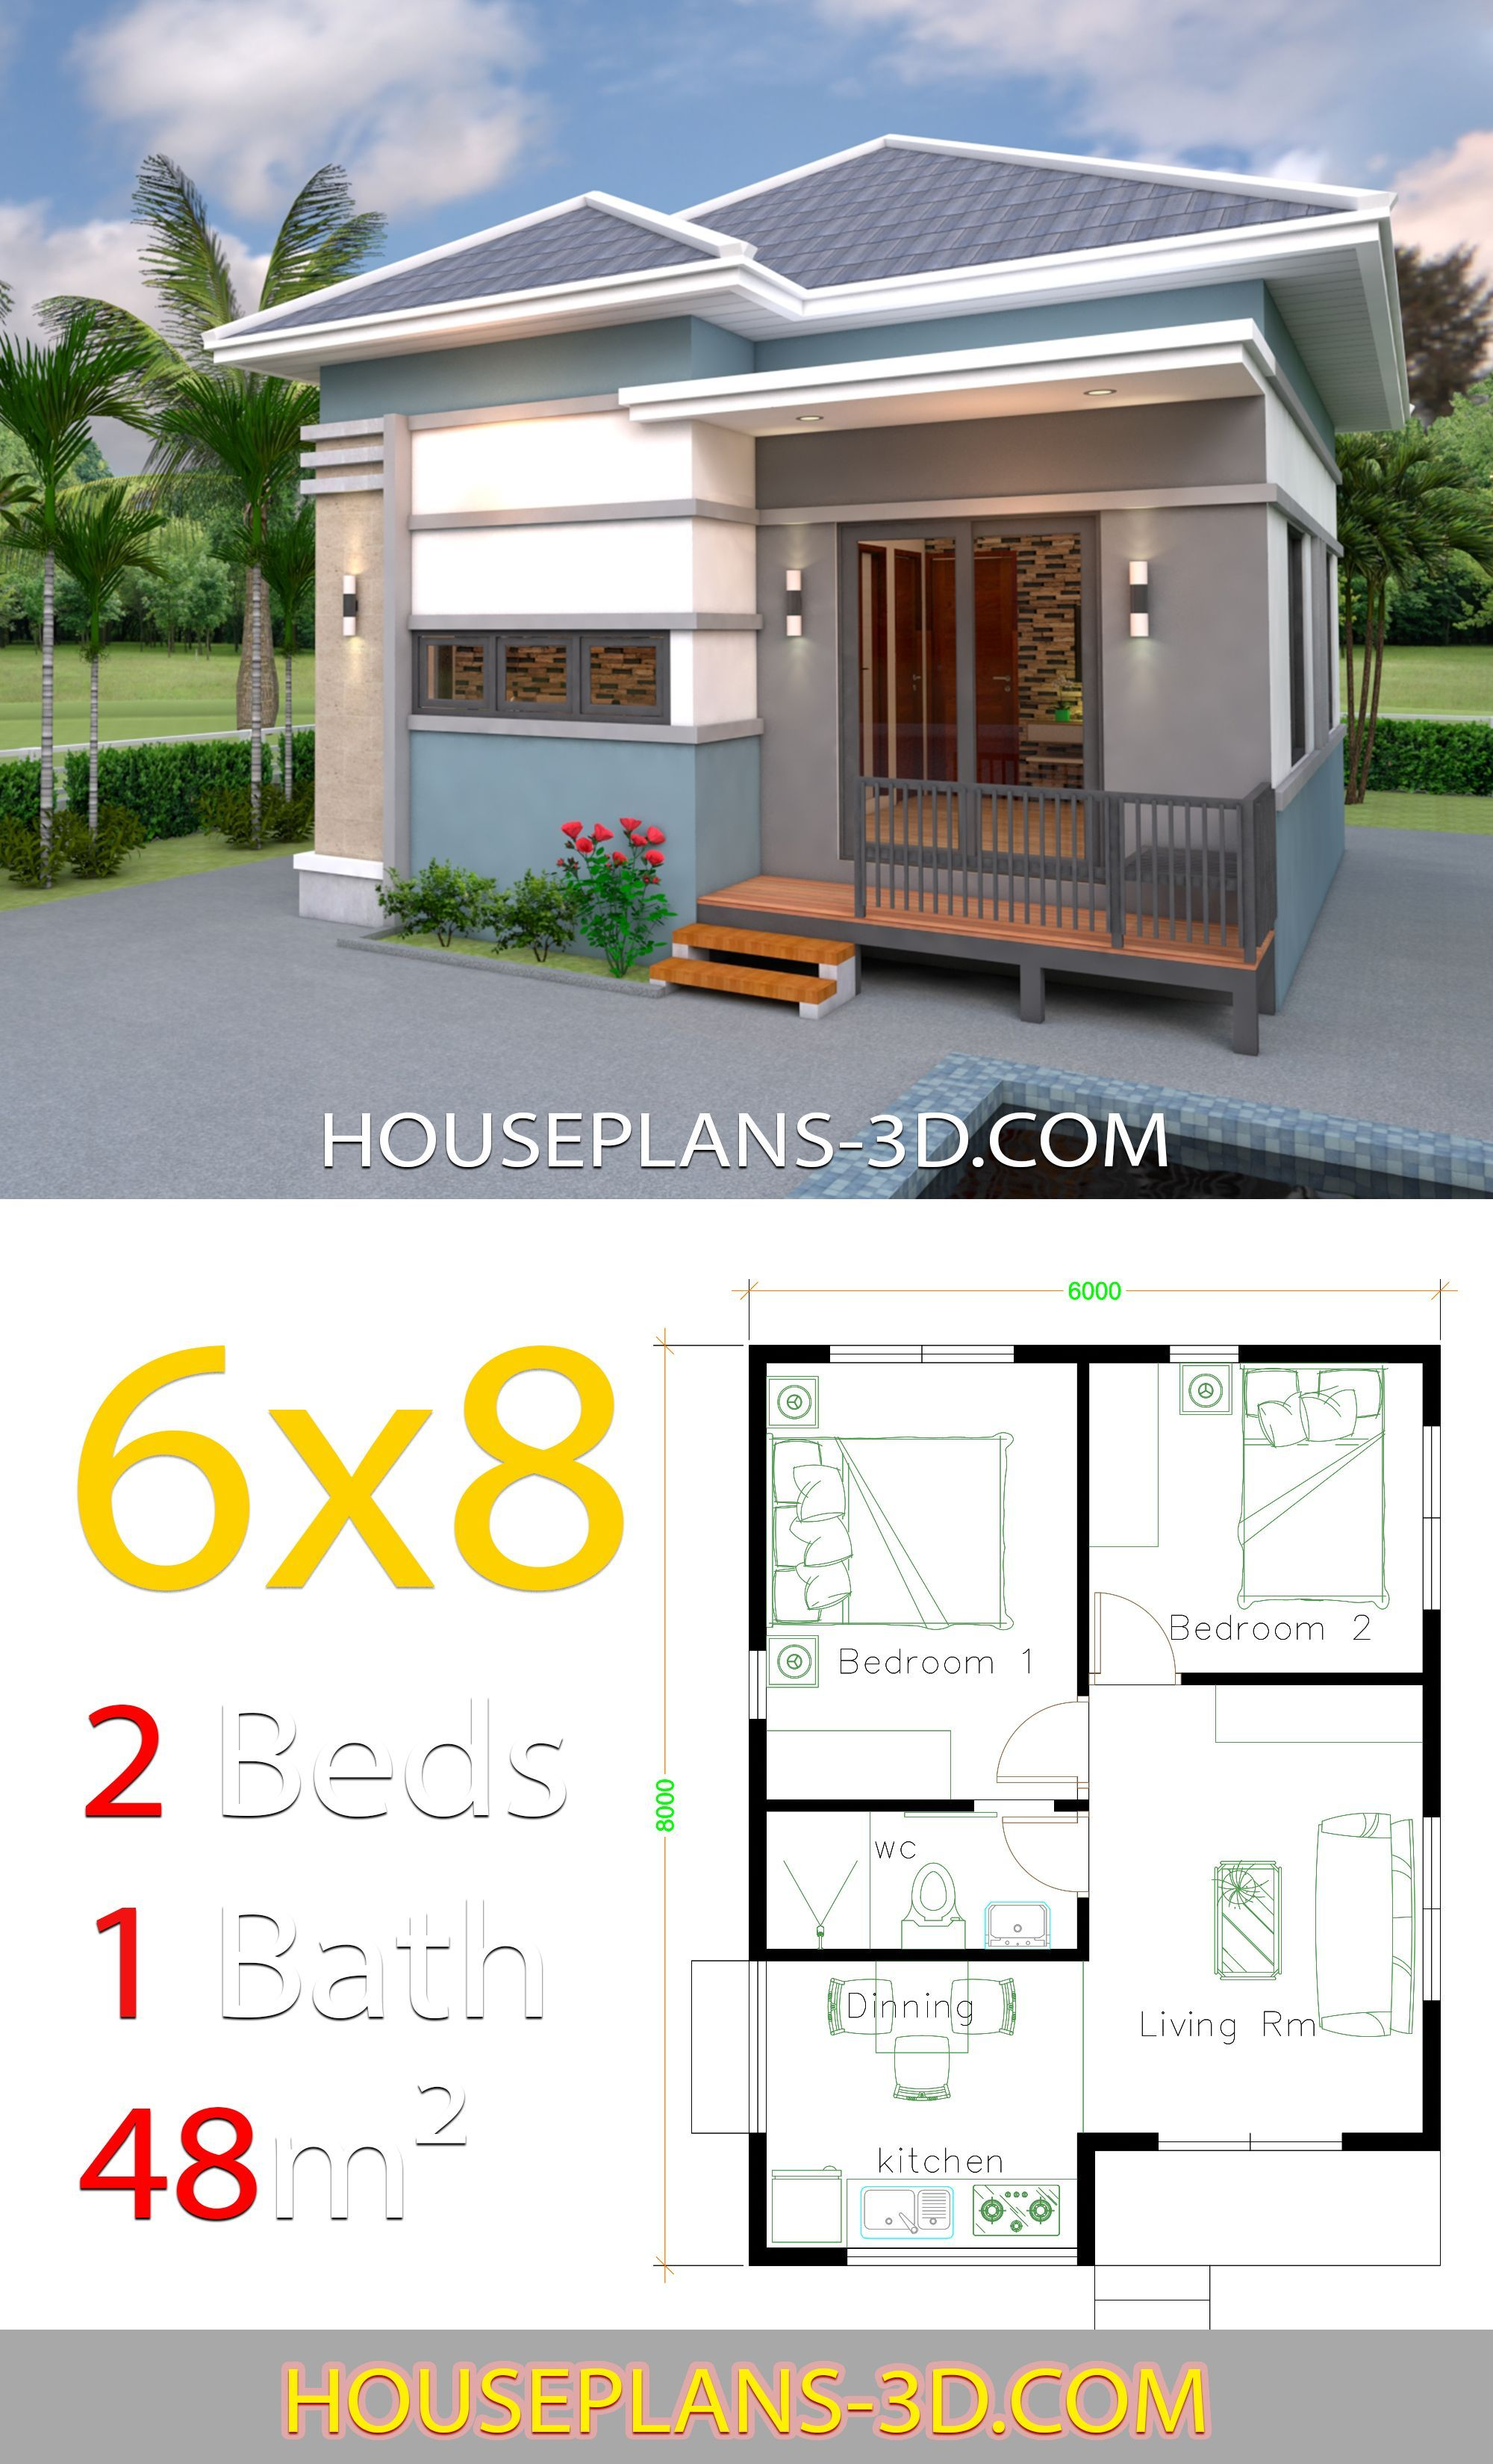 Pin By مسلم On پلان های مسلم In 2020 Small House Design Plans Small House Exteriors House Plans